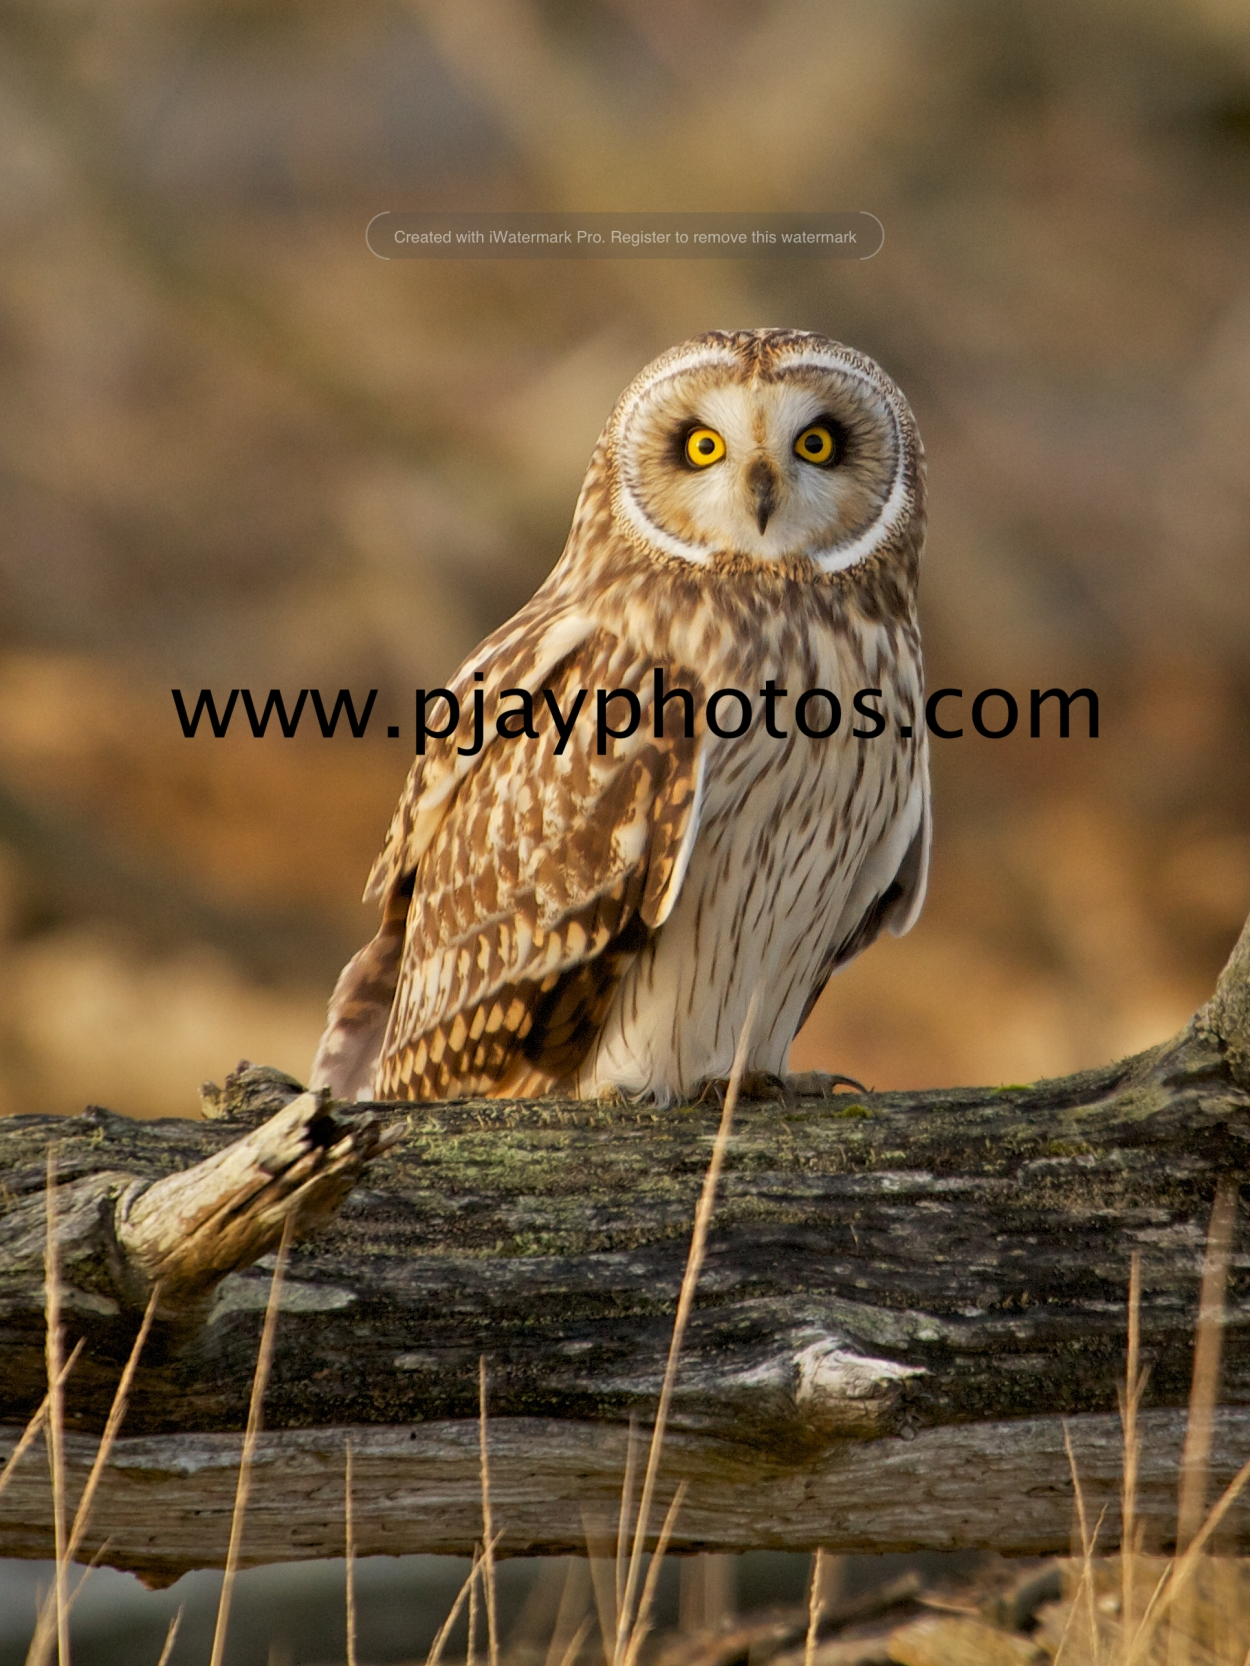 short-eared owl, owl, bird, scotland, uk, photograph, nature, wildlife